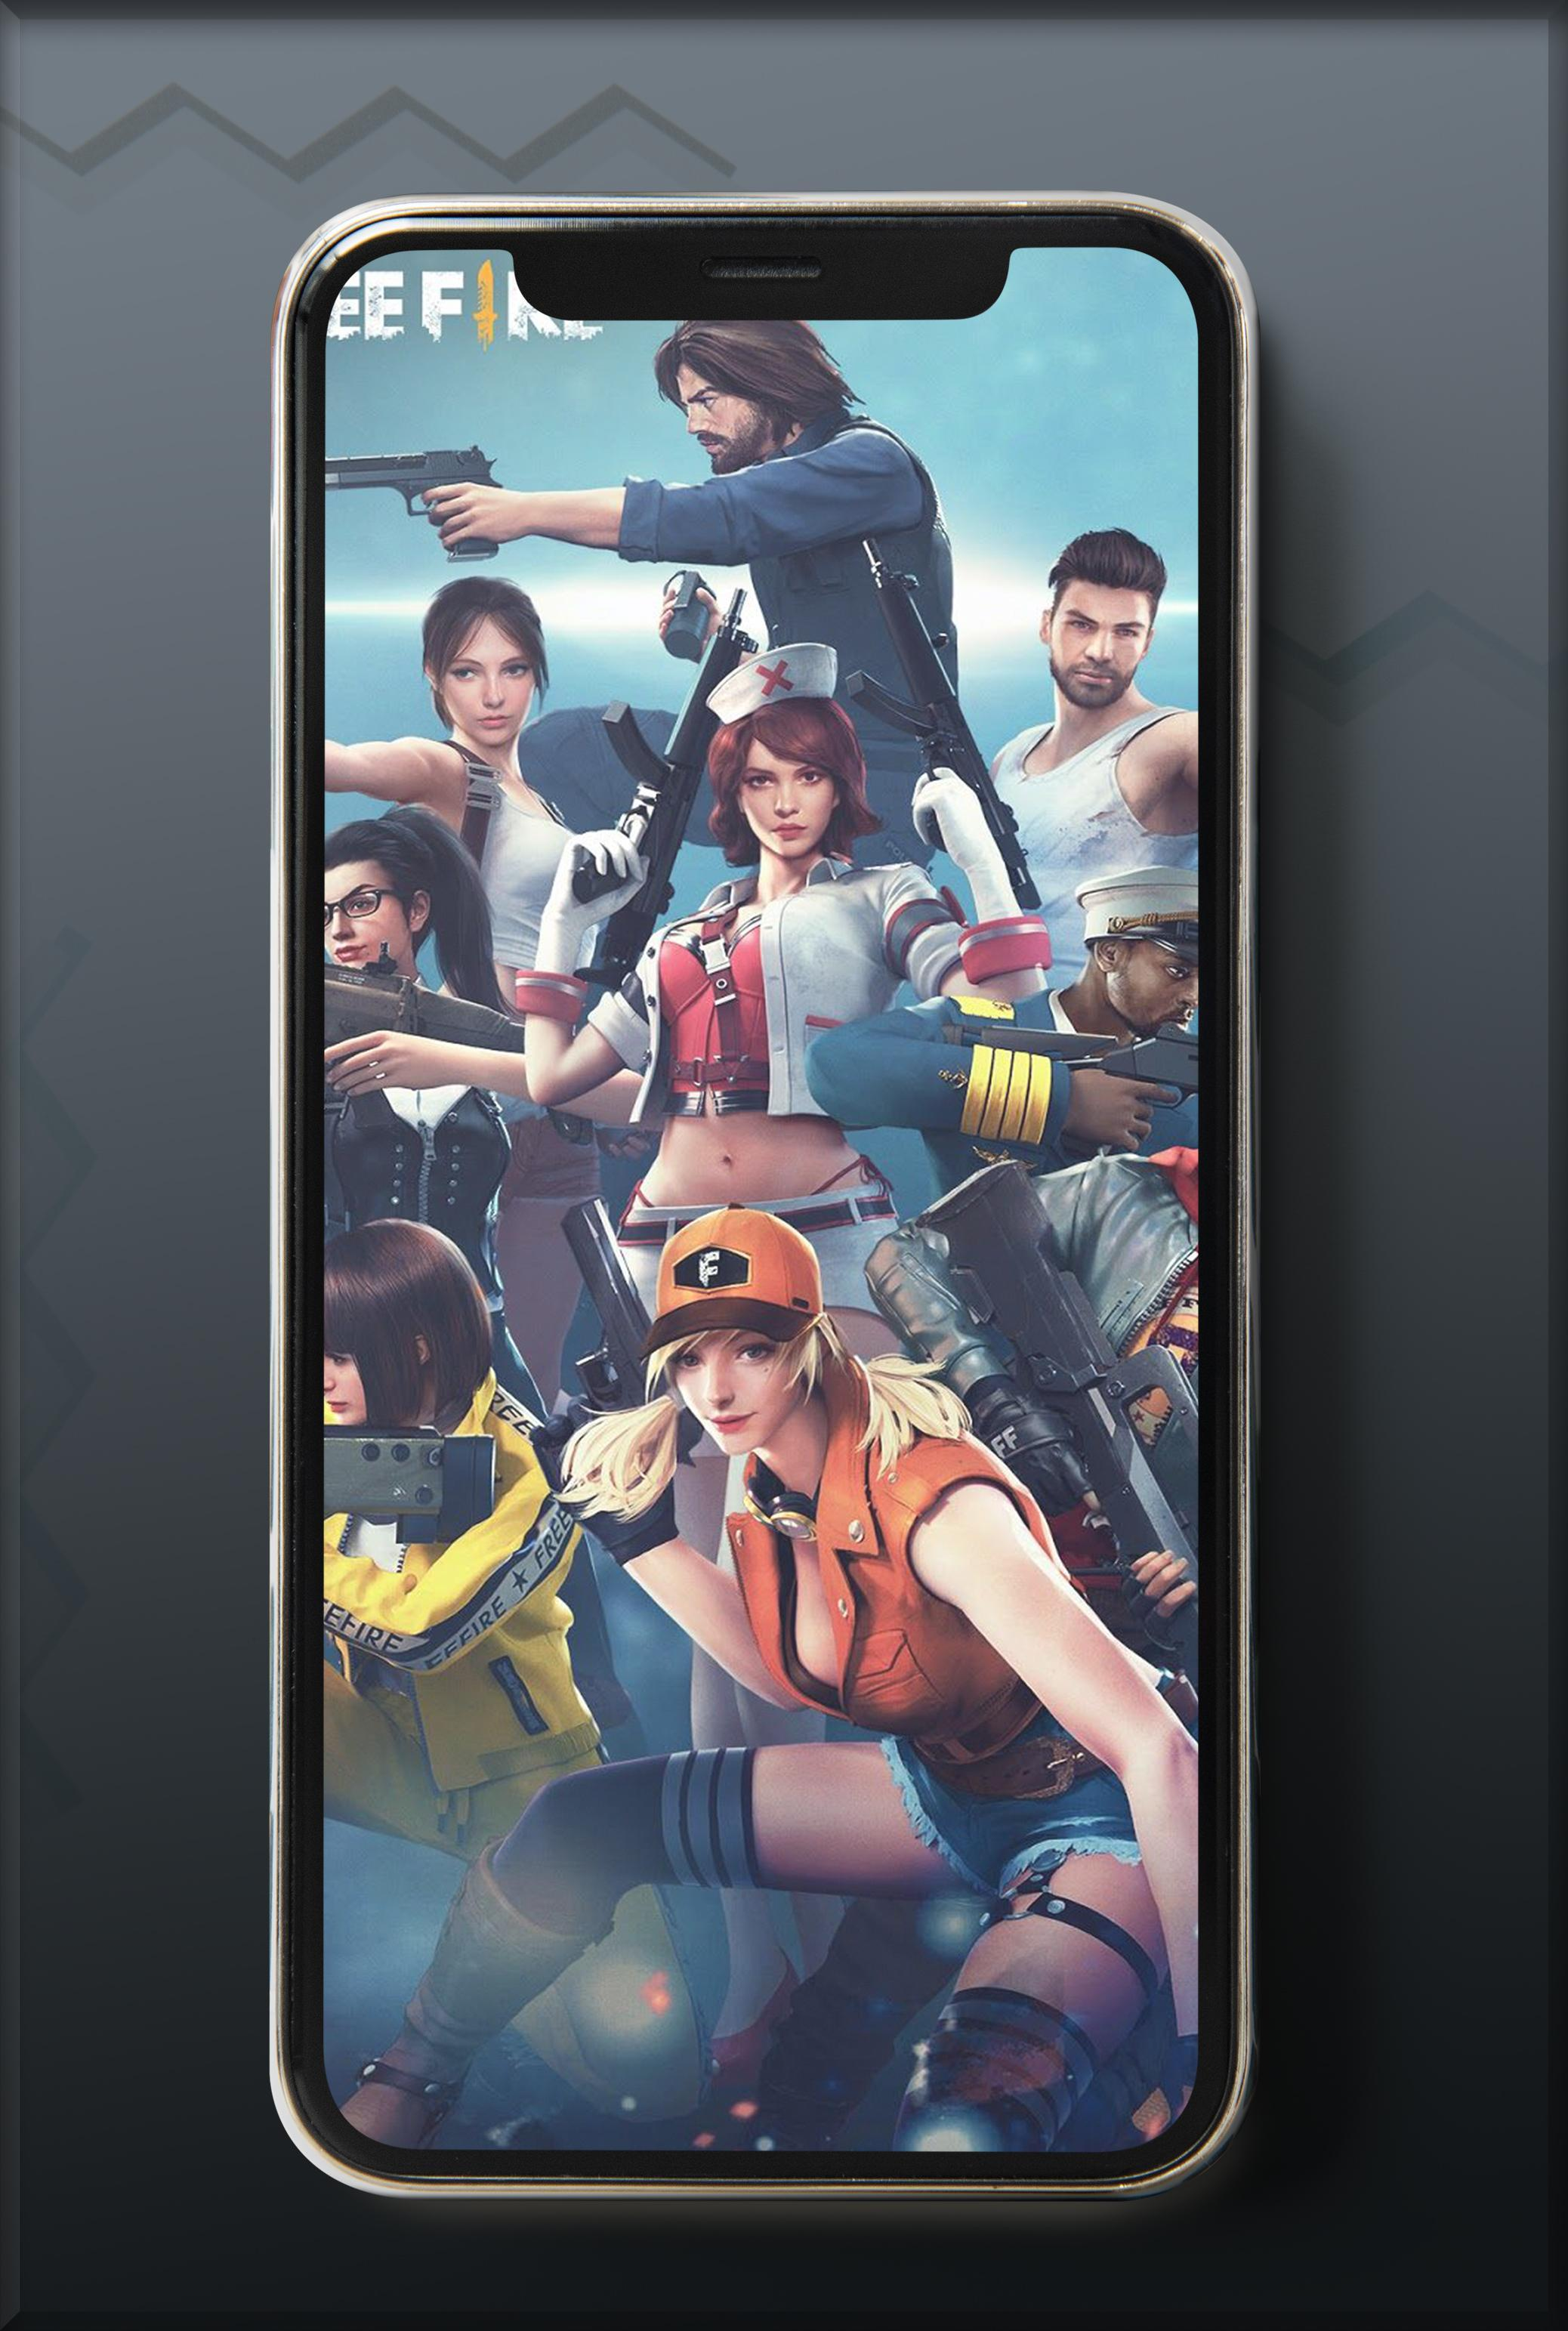 Free Fire Hd Wallpapers Garena For Android Apk Download